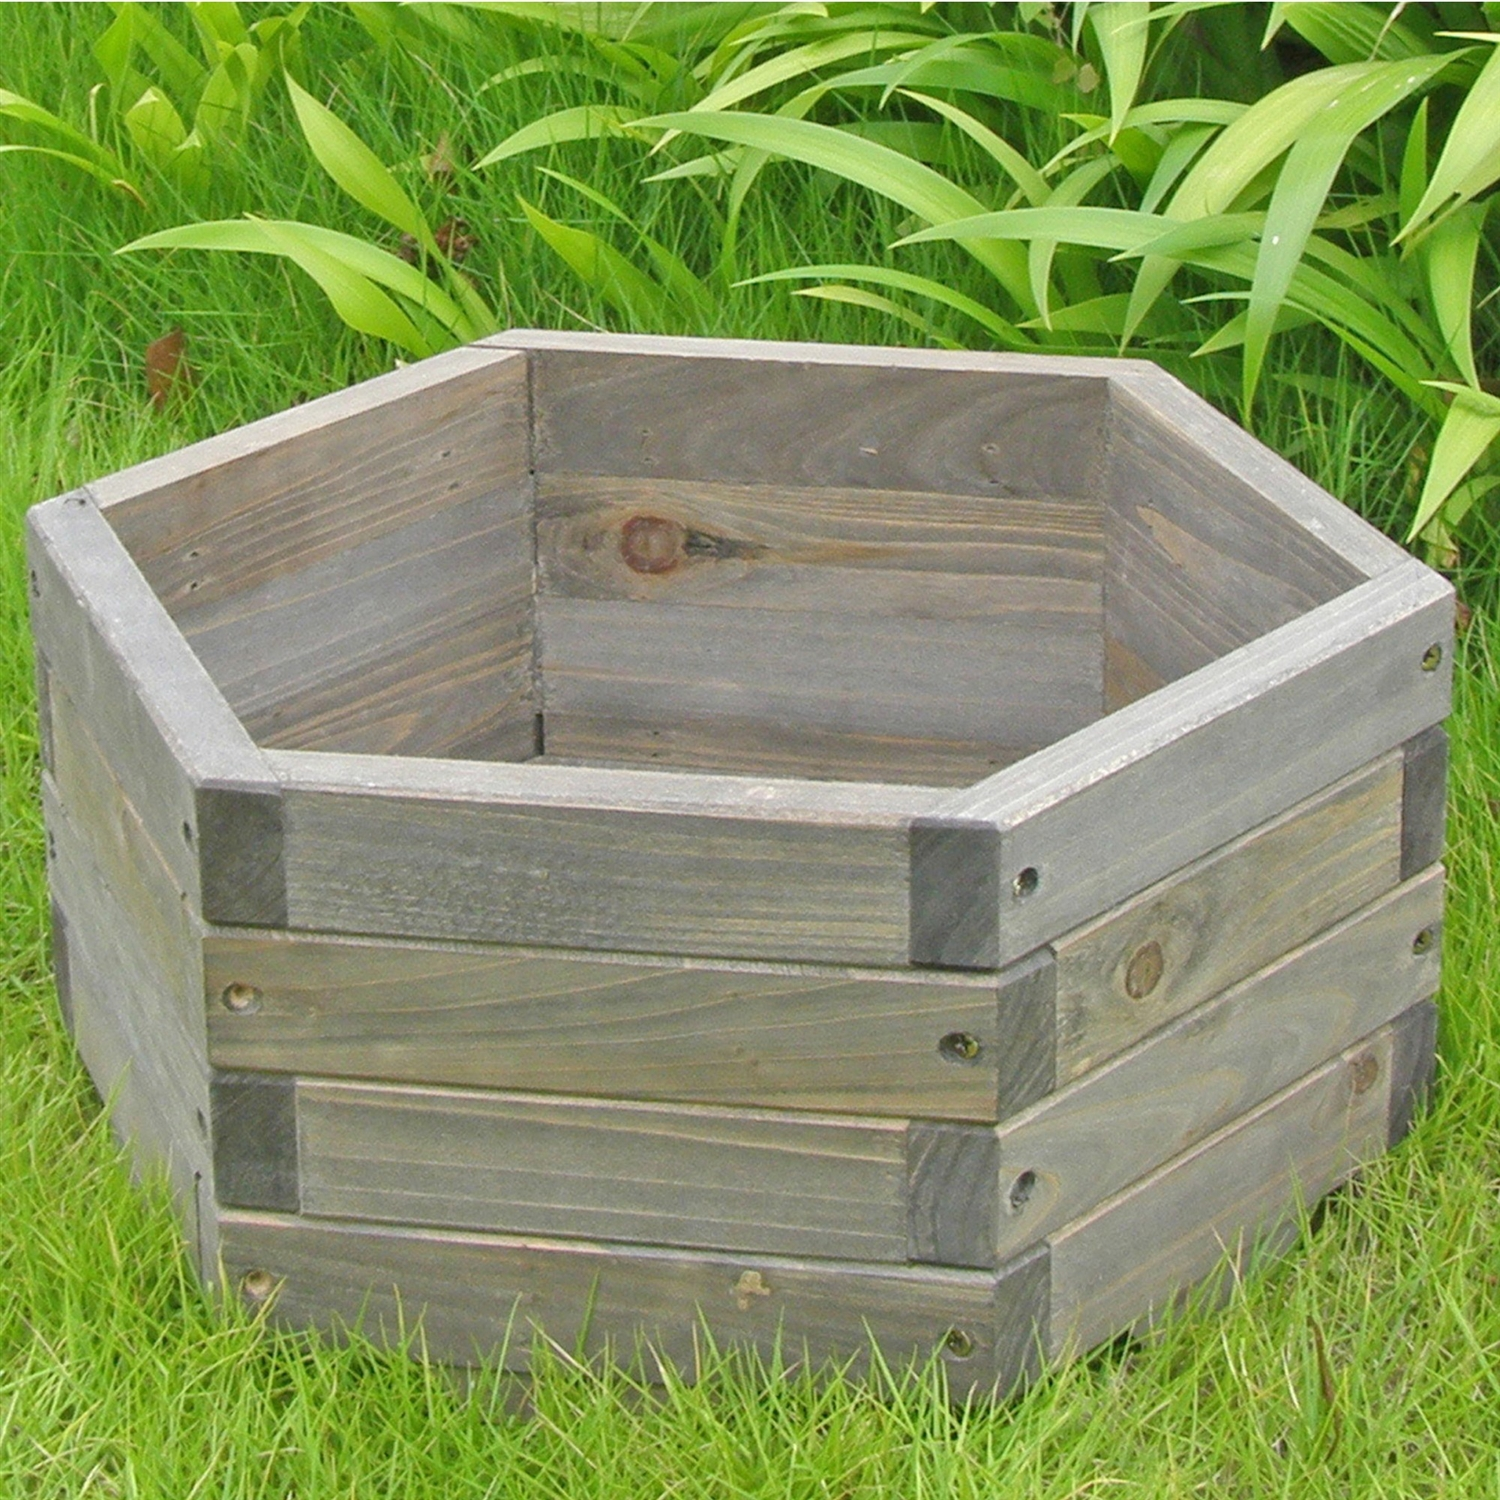 Medium 20 x 20 x 9-inch Hexagon Fir Wood Barrel Planter, MHP3616 :  This Medium 20 x 20 x 9-inch Hexagon Fir Wood Barrel Planter would be a great addition to your home. It has a hexagon shaped garden barrel and is functional and practical. Made of Chinese fir which has the natural resistance to moisture, decay, and insect damage and is highly durable and scented; Functional and practical to use it indoors and out on patios, decks and lawns; Indoor Use: Yes Assembly Type: Assembly required; Product Warranty: 90 days warranty, Free of Manufacturer defects, free replacement for damaged parts within warranty terms Material: Chinese Fir; Finish: Natural Shape: Hexagon; Drainage Holes: Yes Insect Resistant: Yes; Warp Resistant: Yes Rot Resistant: Yes; Distressed: Yes Recycled Content: 0%.